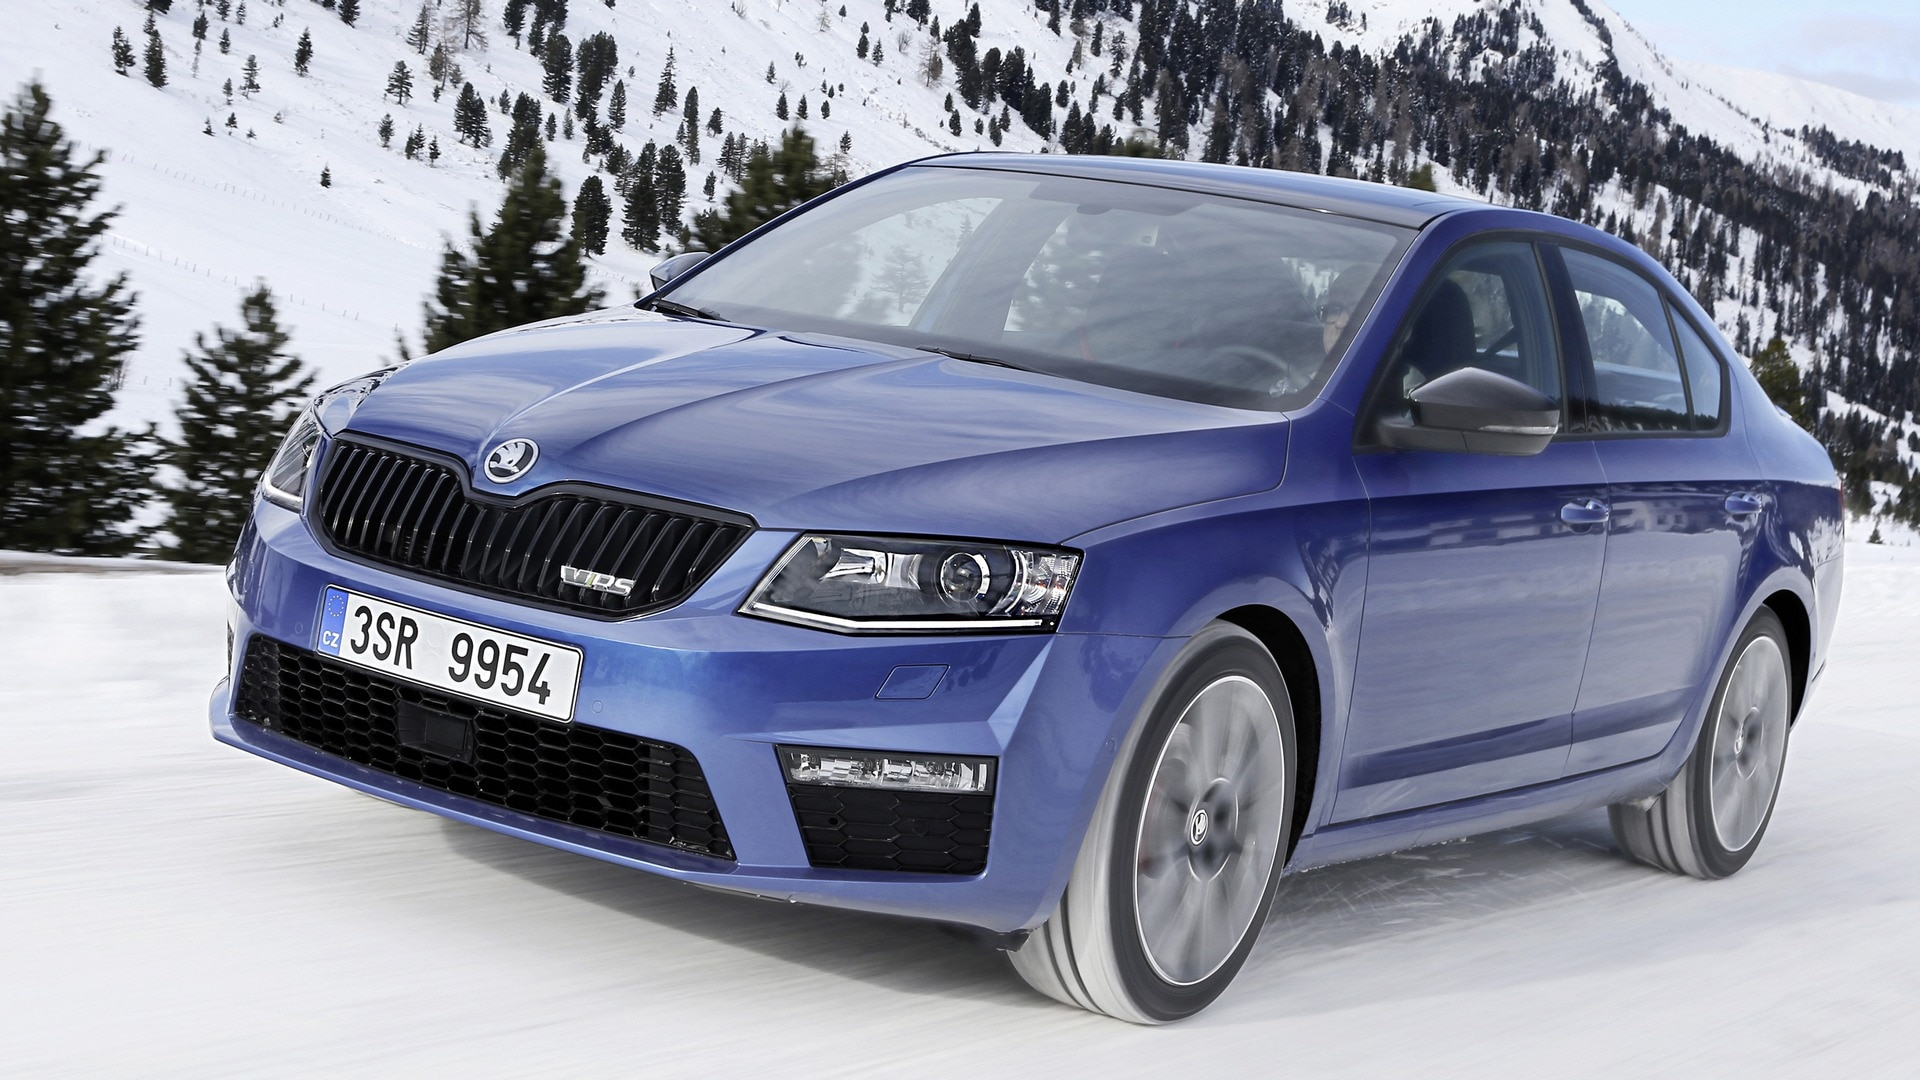 The new OCTAVIA RS comes with sporty LED headlamps revealing the racy intentions of the car.